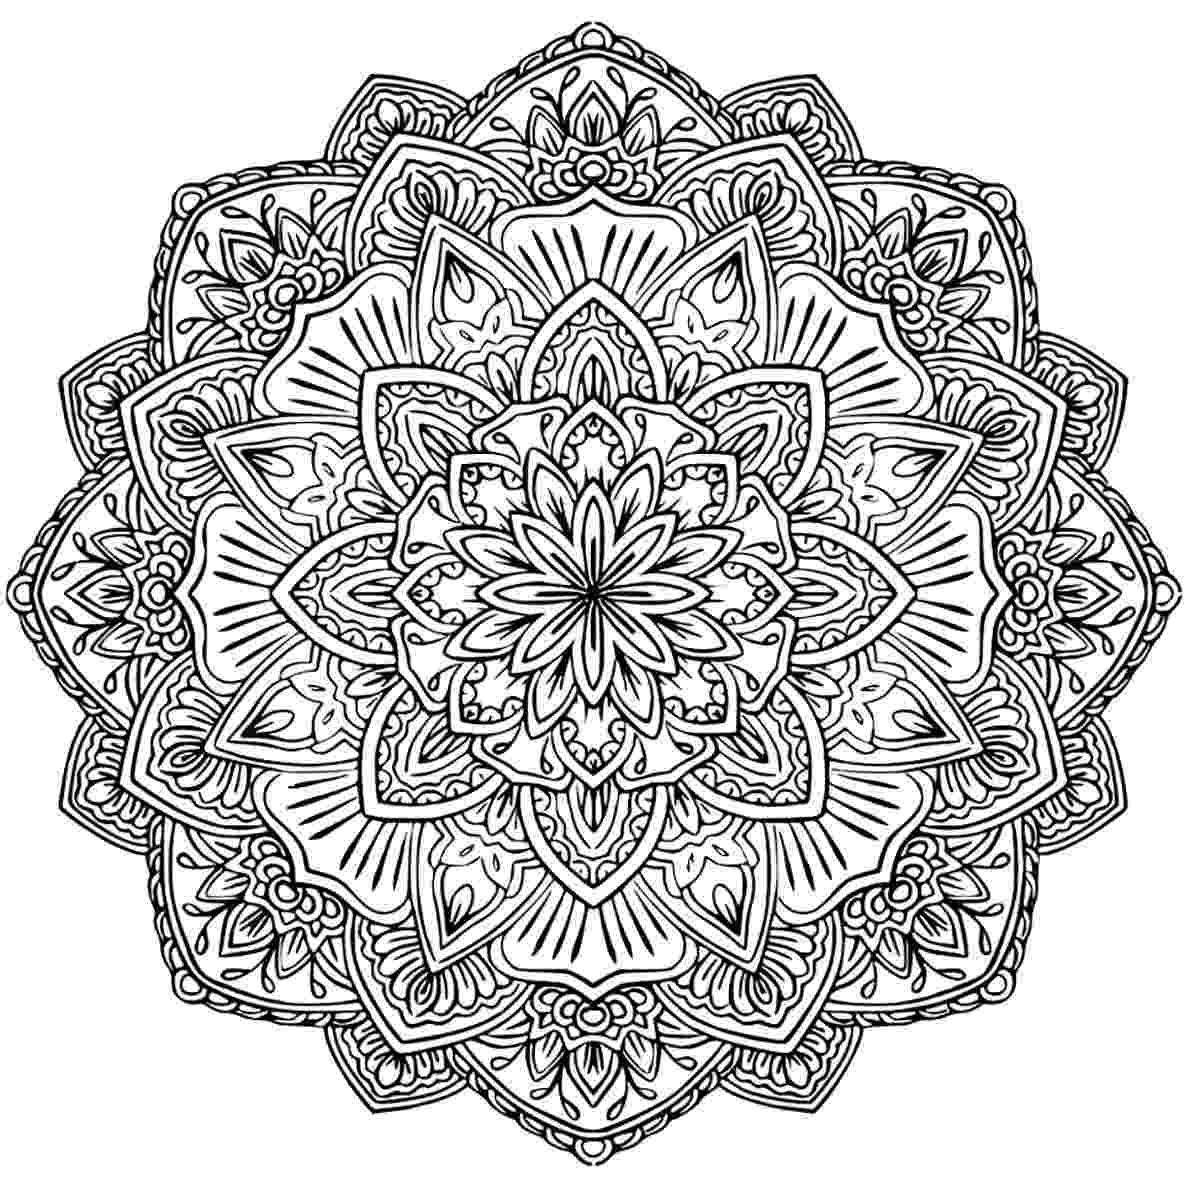 difficult mandala coloring pages coloring pages difficult but fun coloring pages free and coloring pages mandala difficult